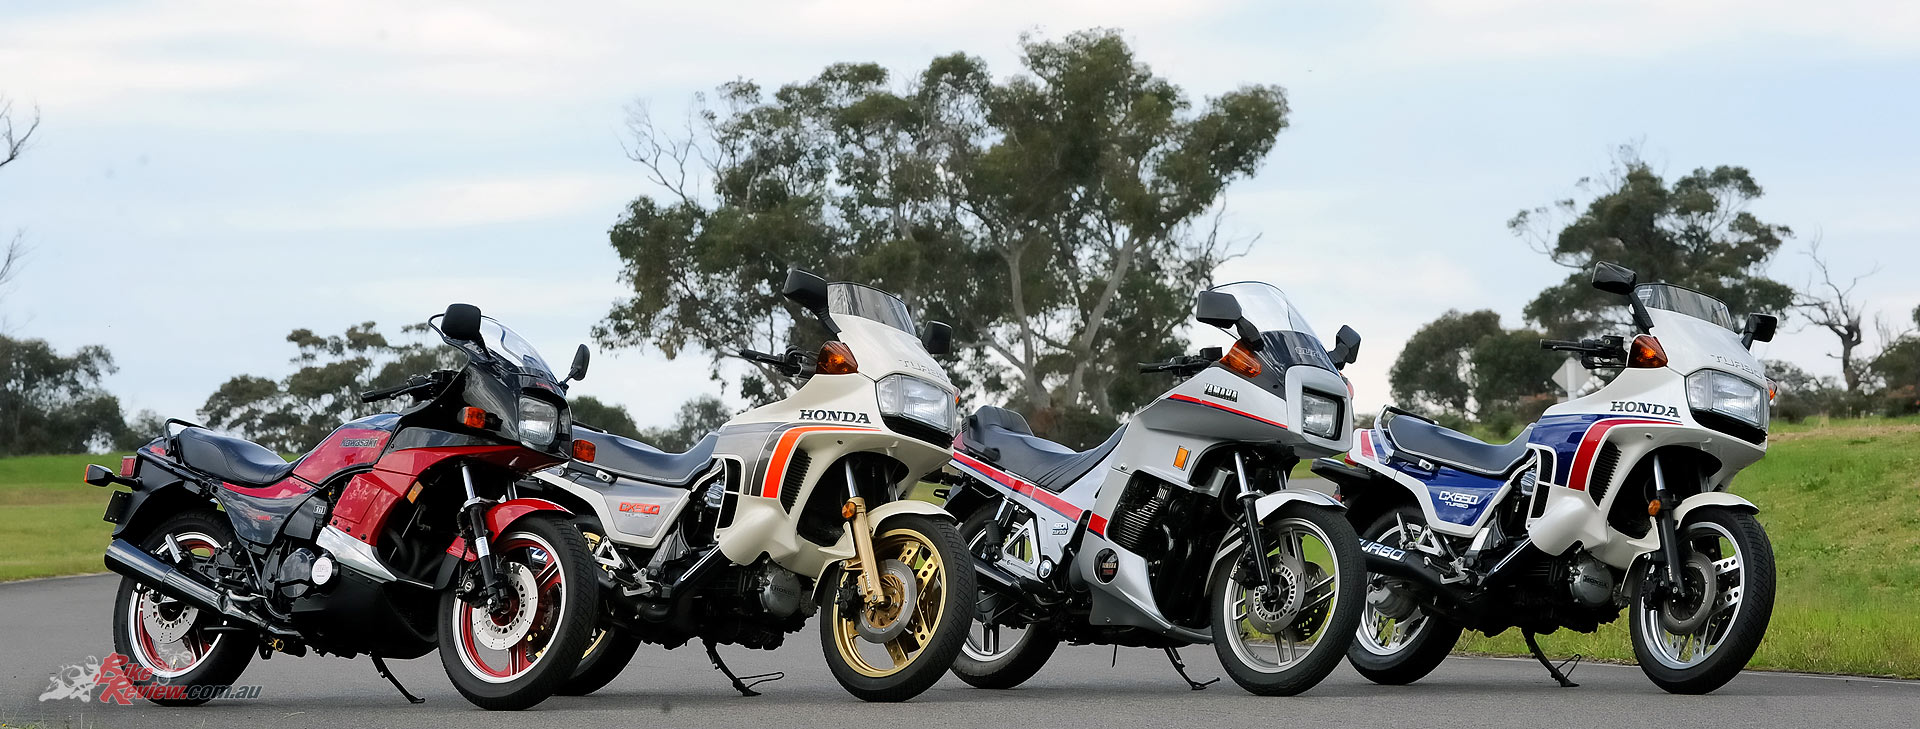 The turbo era was short lived but hopefully with the interest in the new Kawasaki H2 and H2R a new forced induction era is on the way. These four (L-R GPz750 Turbo, CX500 Turbo, XJ650 Turbo, CX650 Turbo) are the best of the pick from the 1980s. The missing machine, Suzuki's XN85, was the lemon of the bunch.